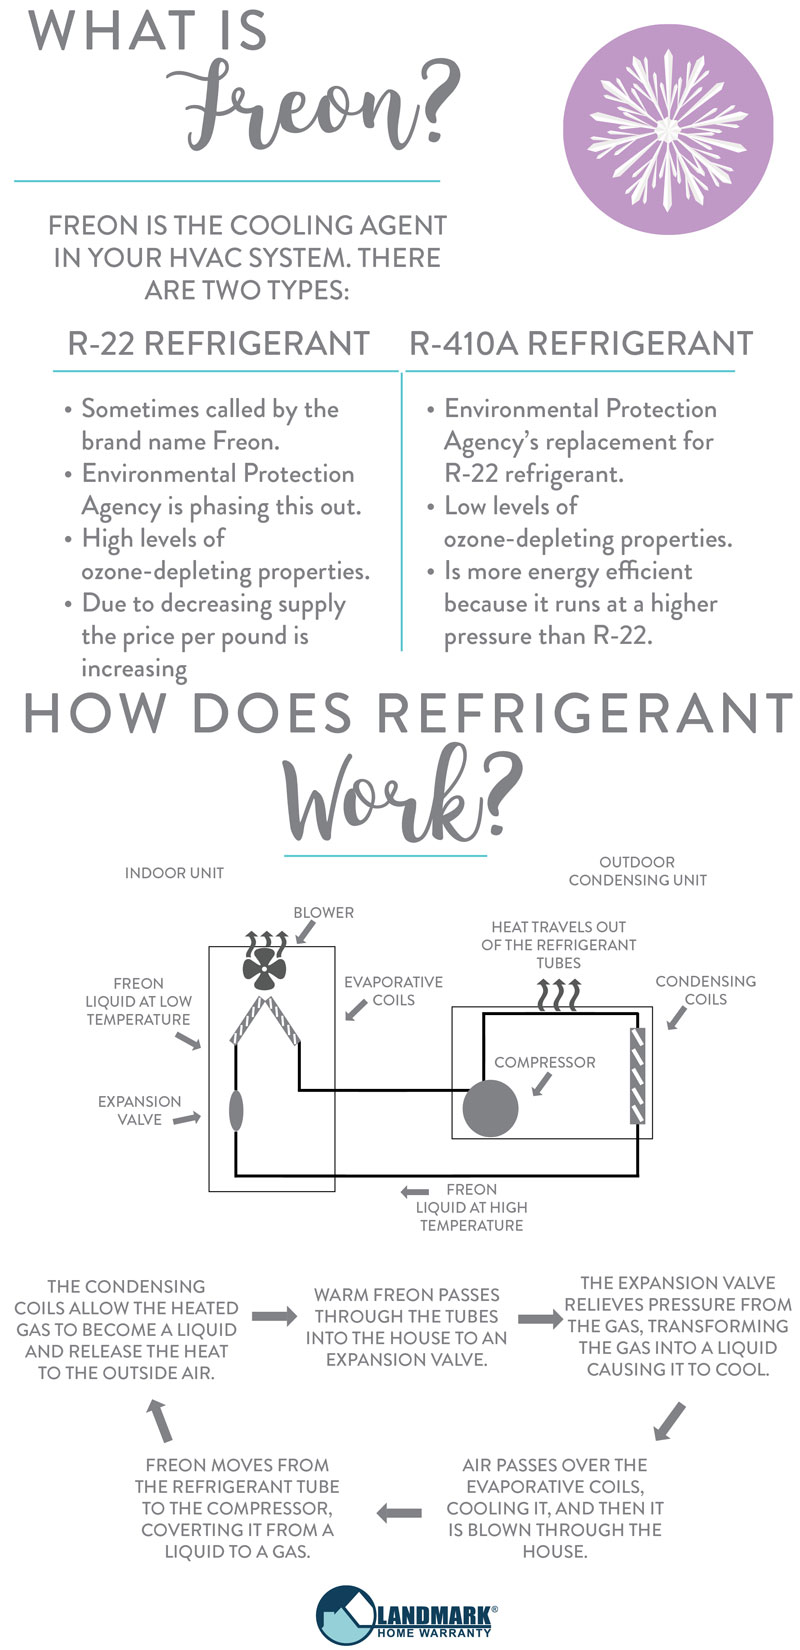 The difference between R-22 refrigerant and R-410A refrigerant is the ozone-depleting properties.